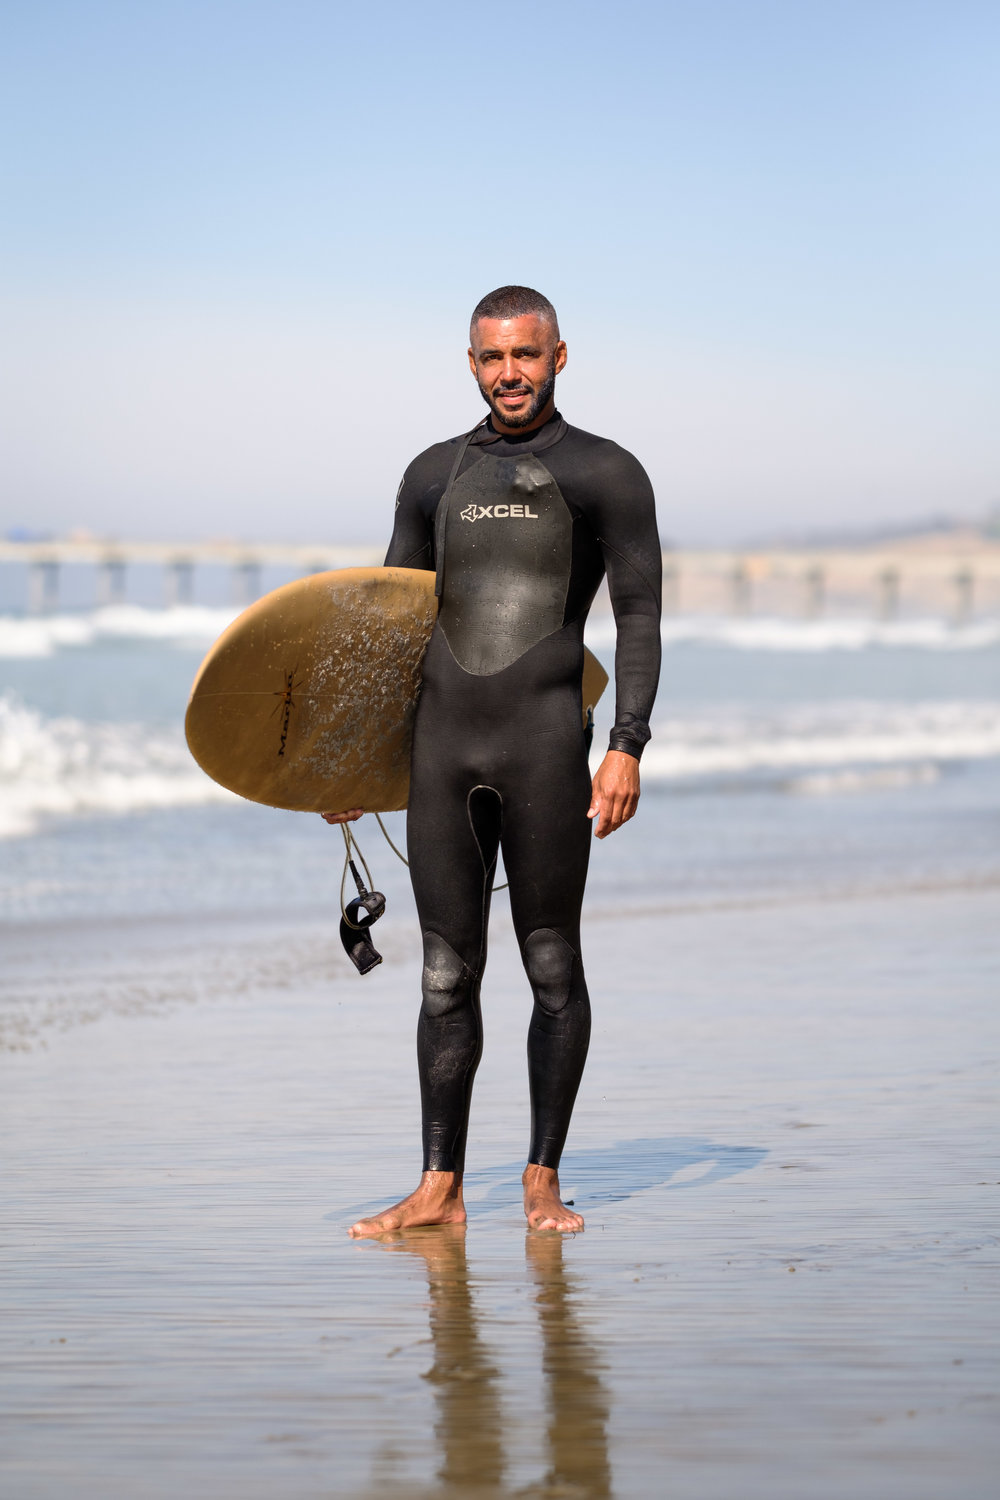 San Diego native and lifelong surfer